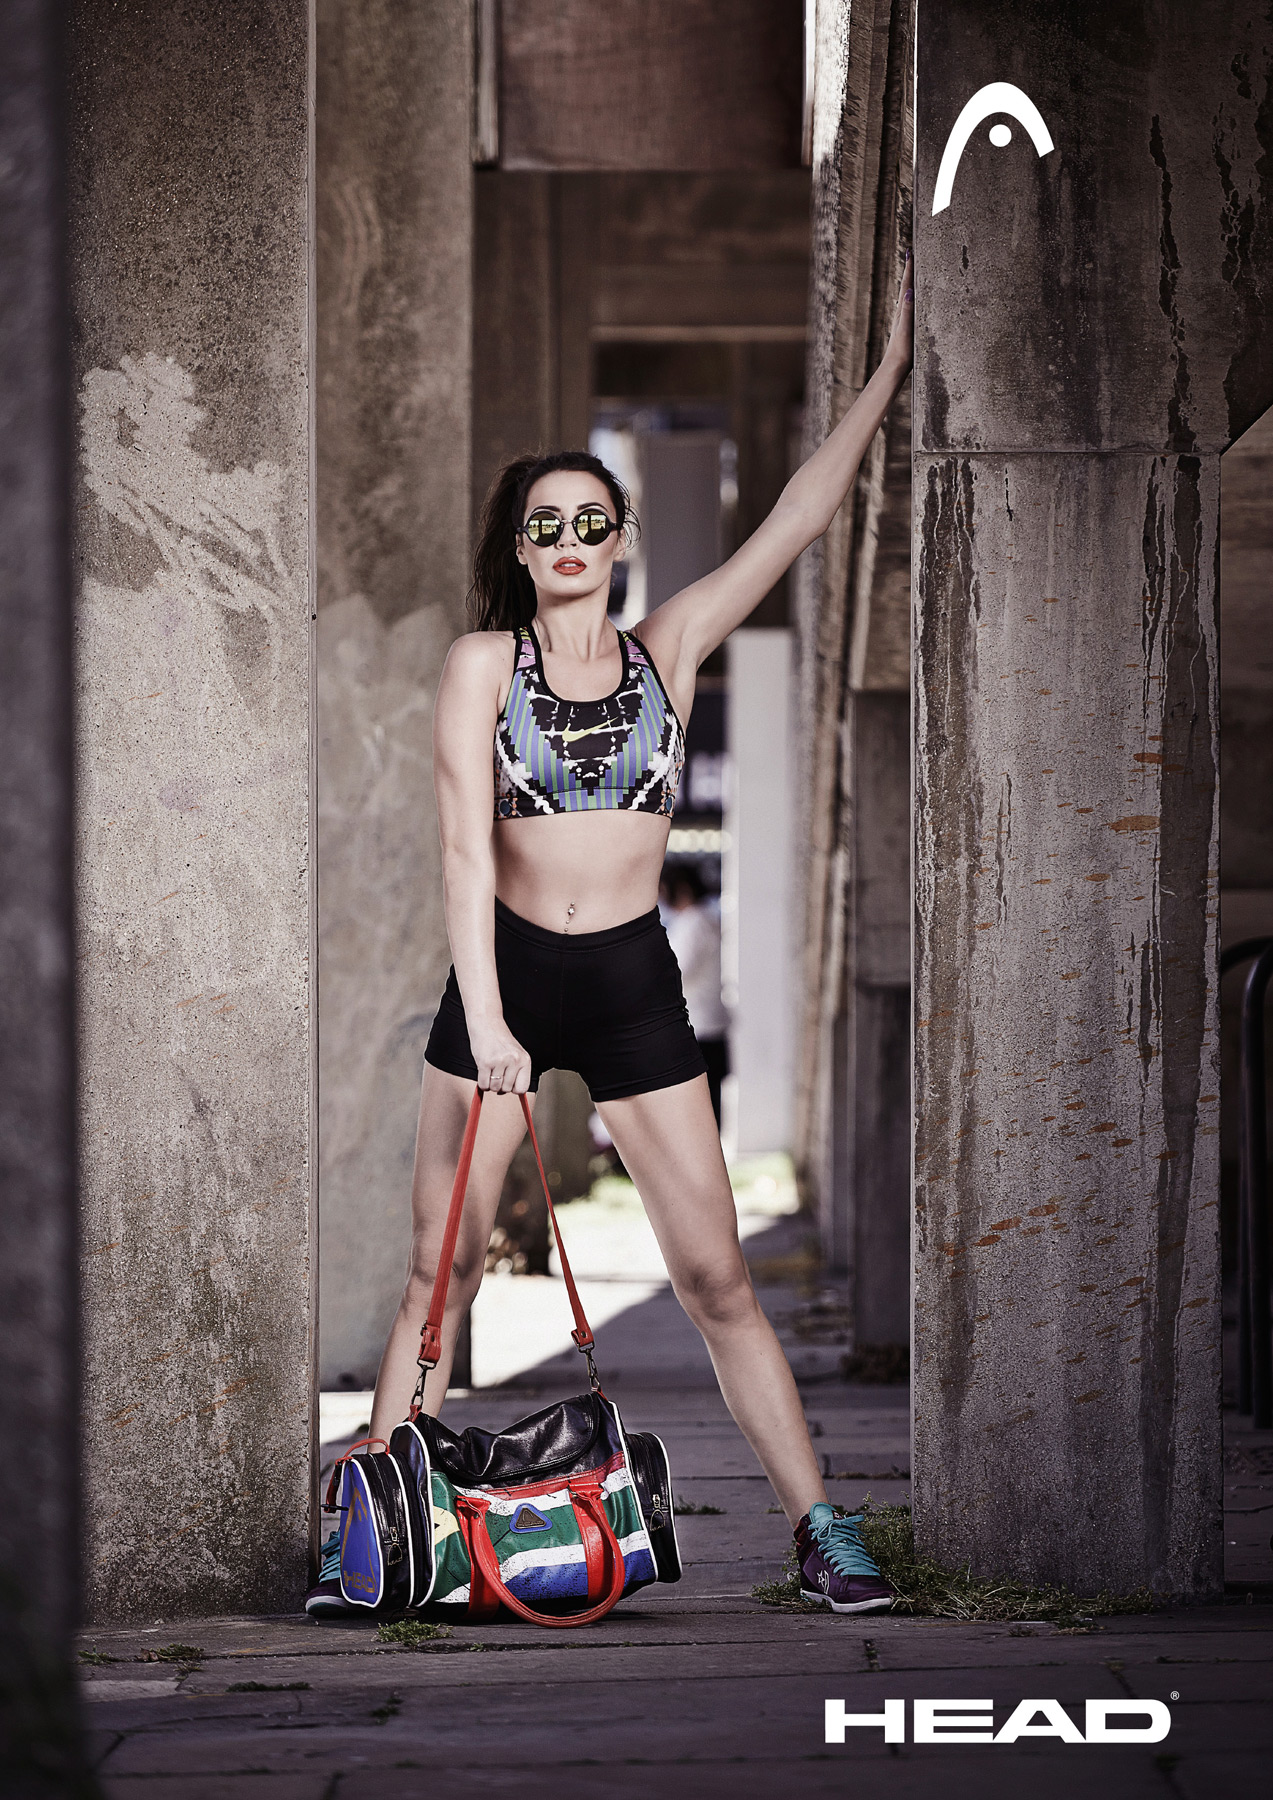 Girl modeling a Head bag in a gritty urban space